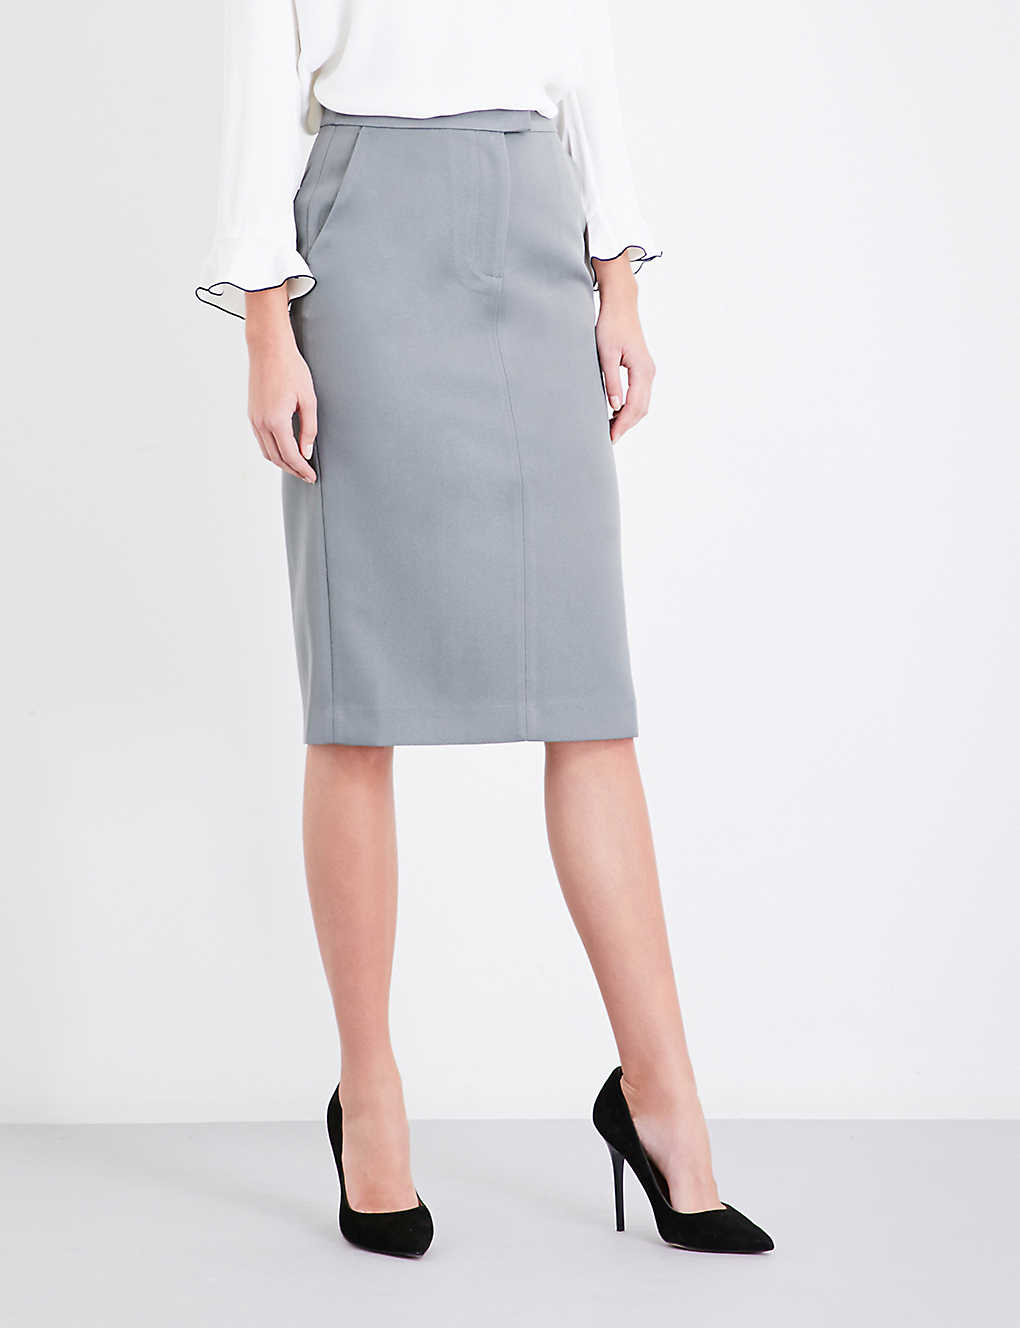 dba66339b4 REISS - Era satin pencil skirt | Selfridges.com